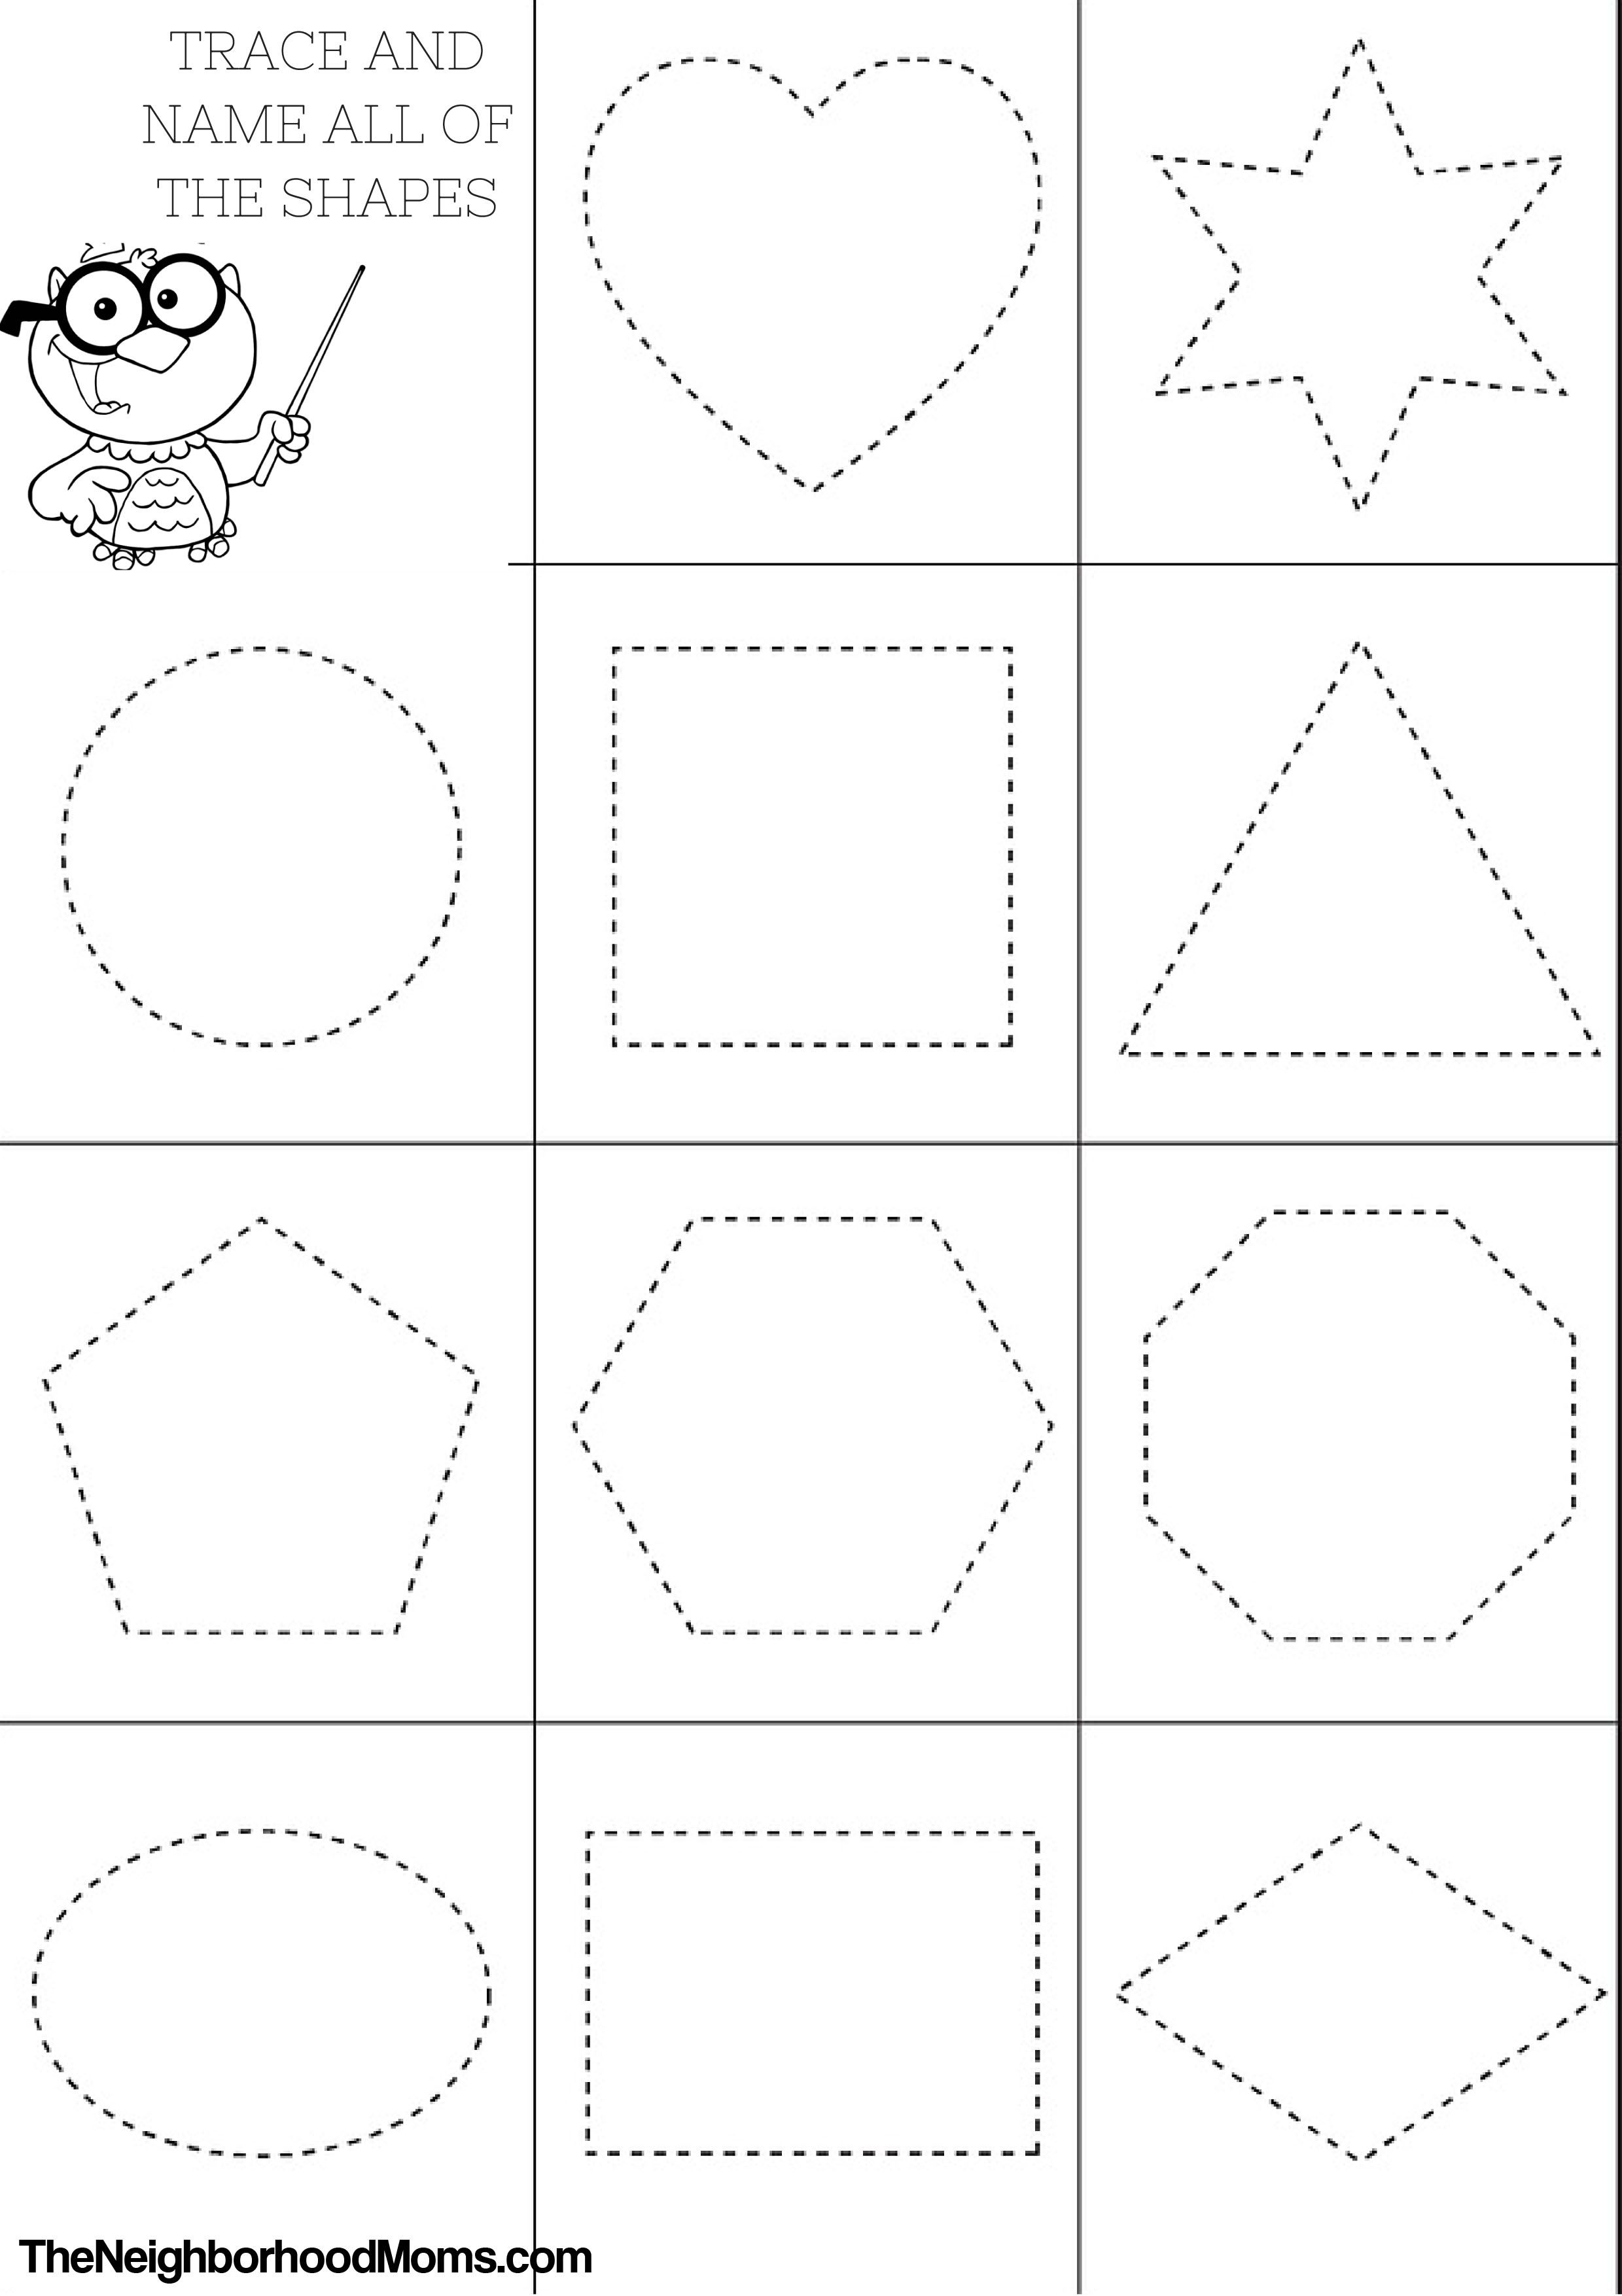 Shapes Coloring Pages Printable  Shapes worksheets, Shape